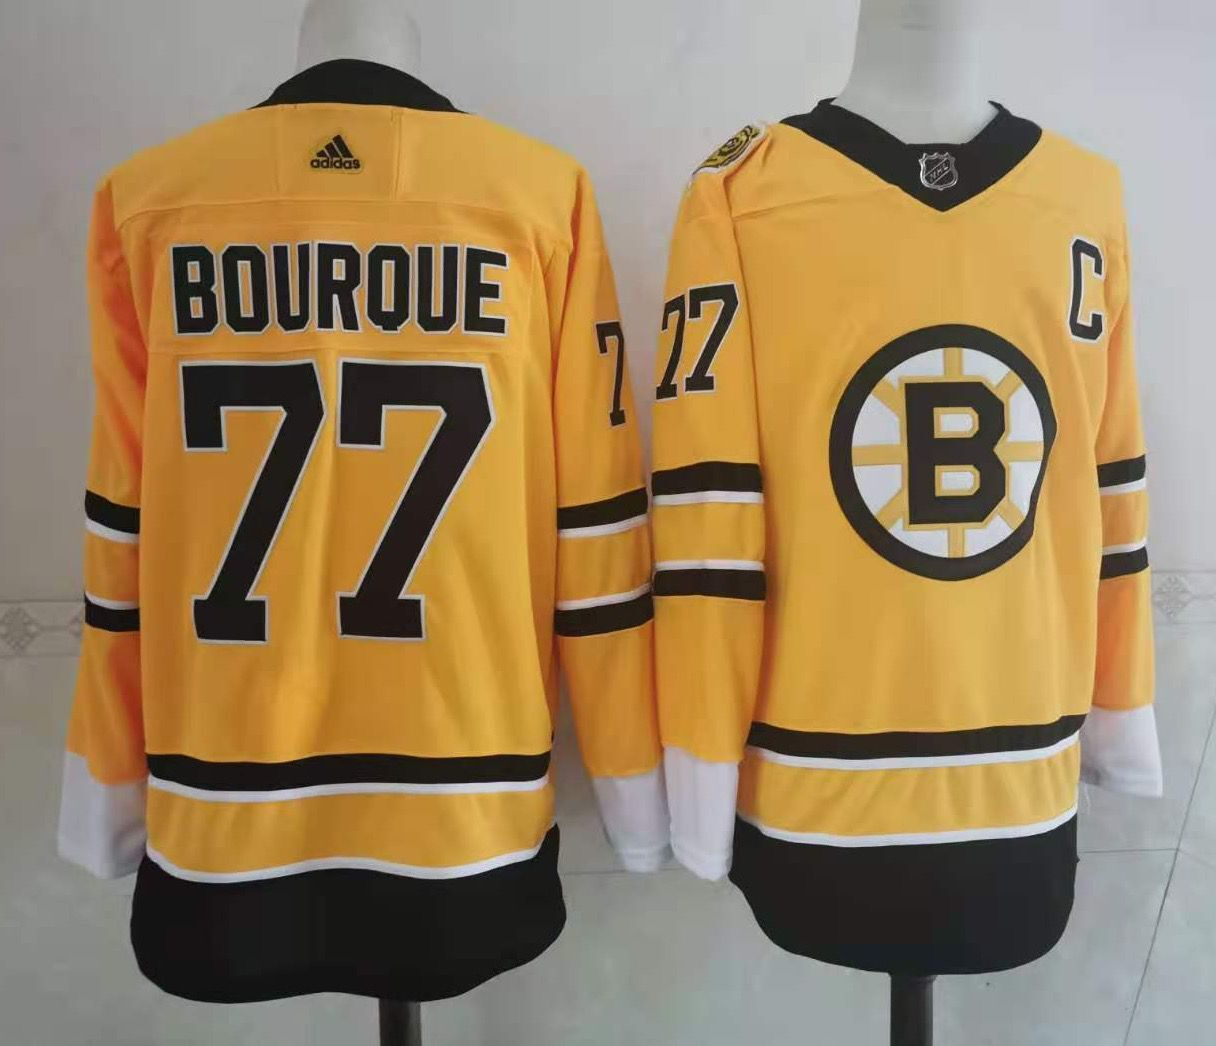 Wholesale Adidas Men Boston Bruins 77 Bourque Authentic Stitched yellow NHL Jersey